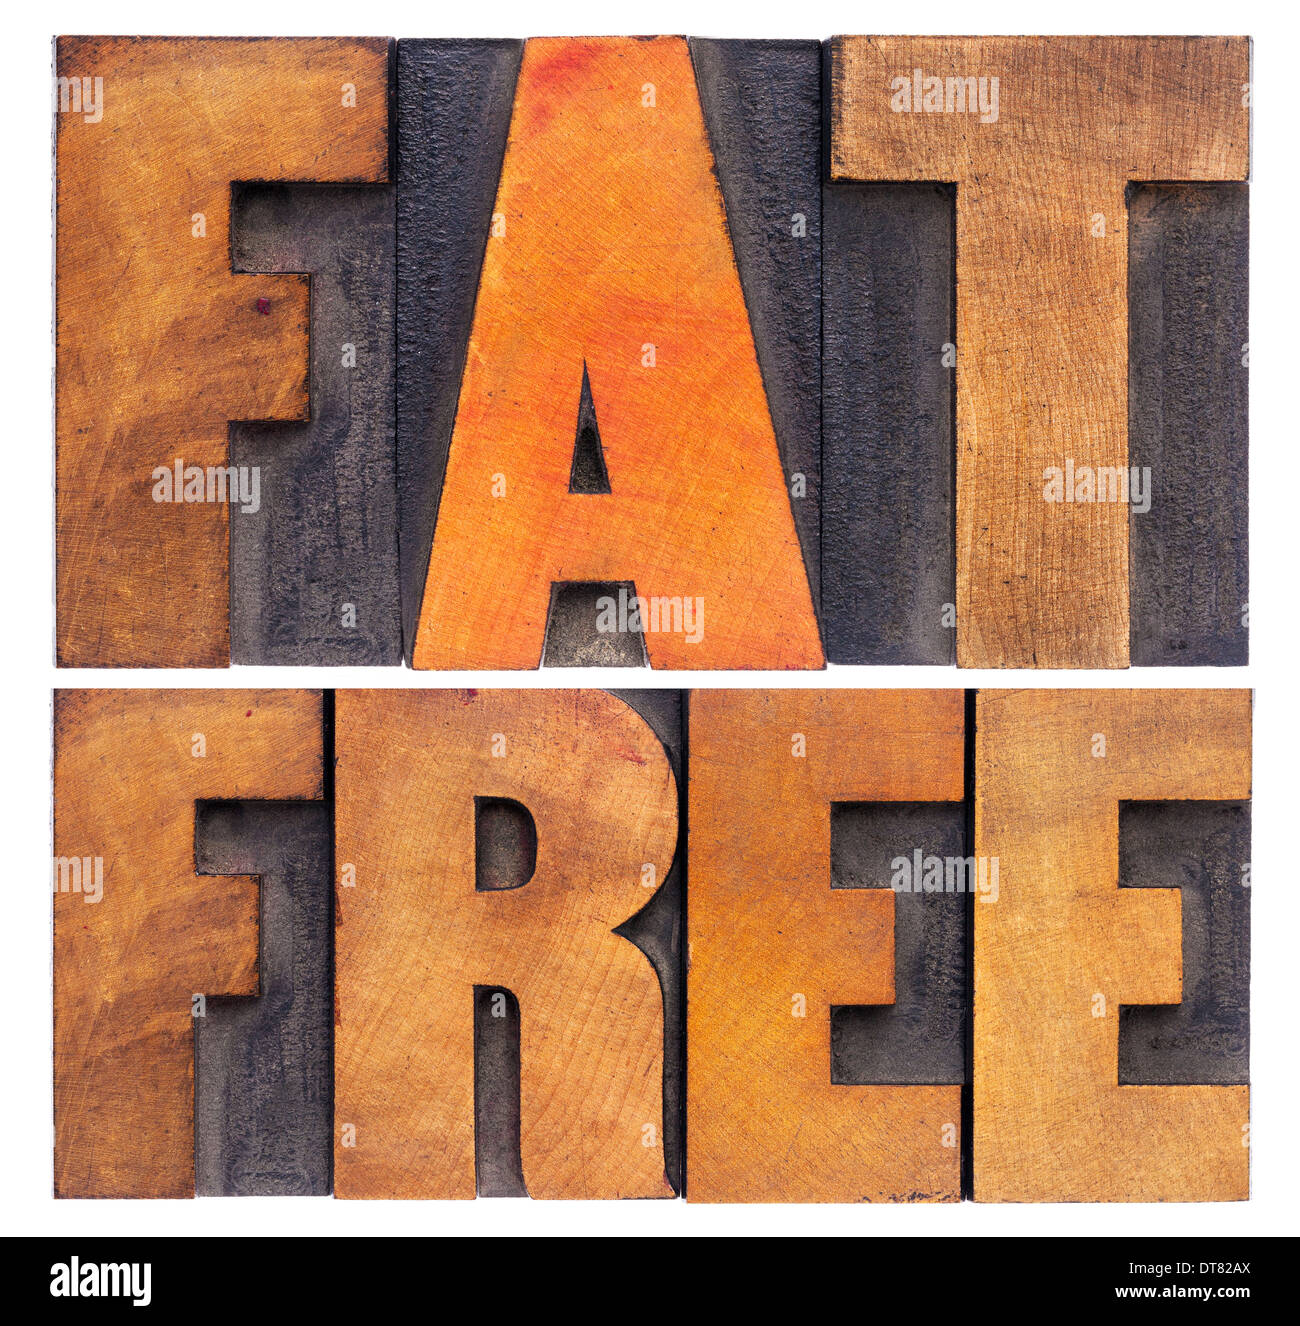 fat free -nutrition concept - isolated text in vintage letterpress wood type Stock Photo